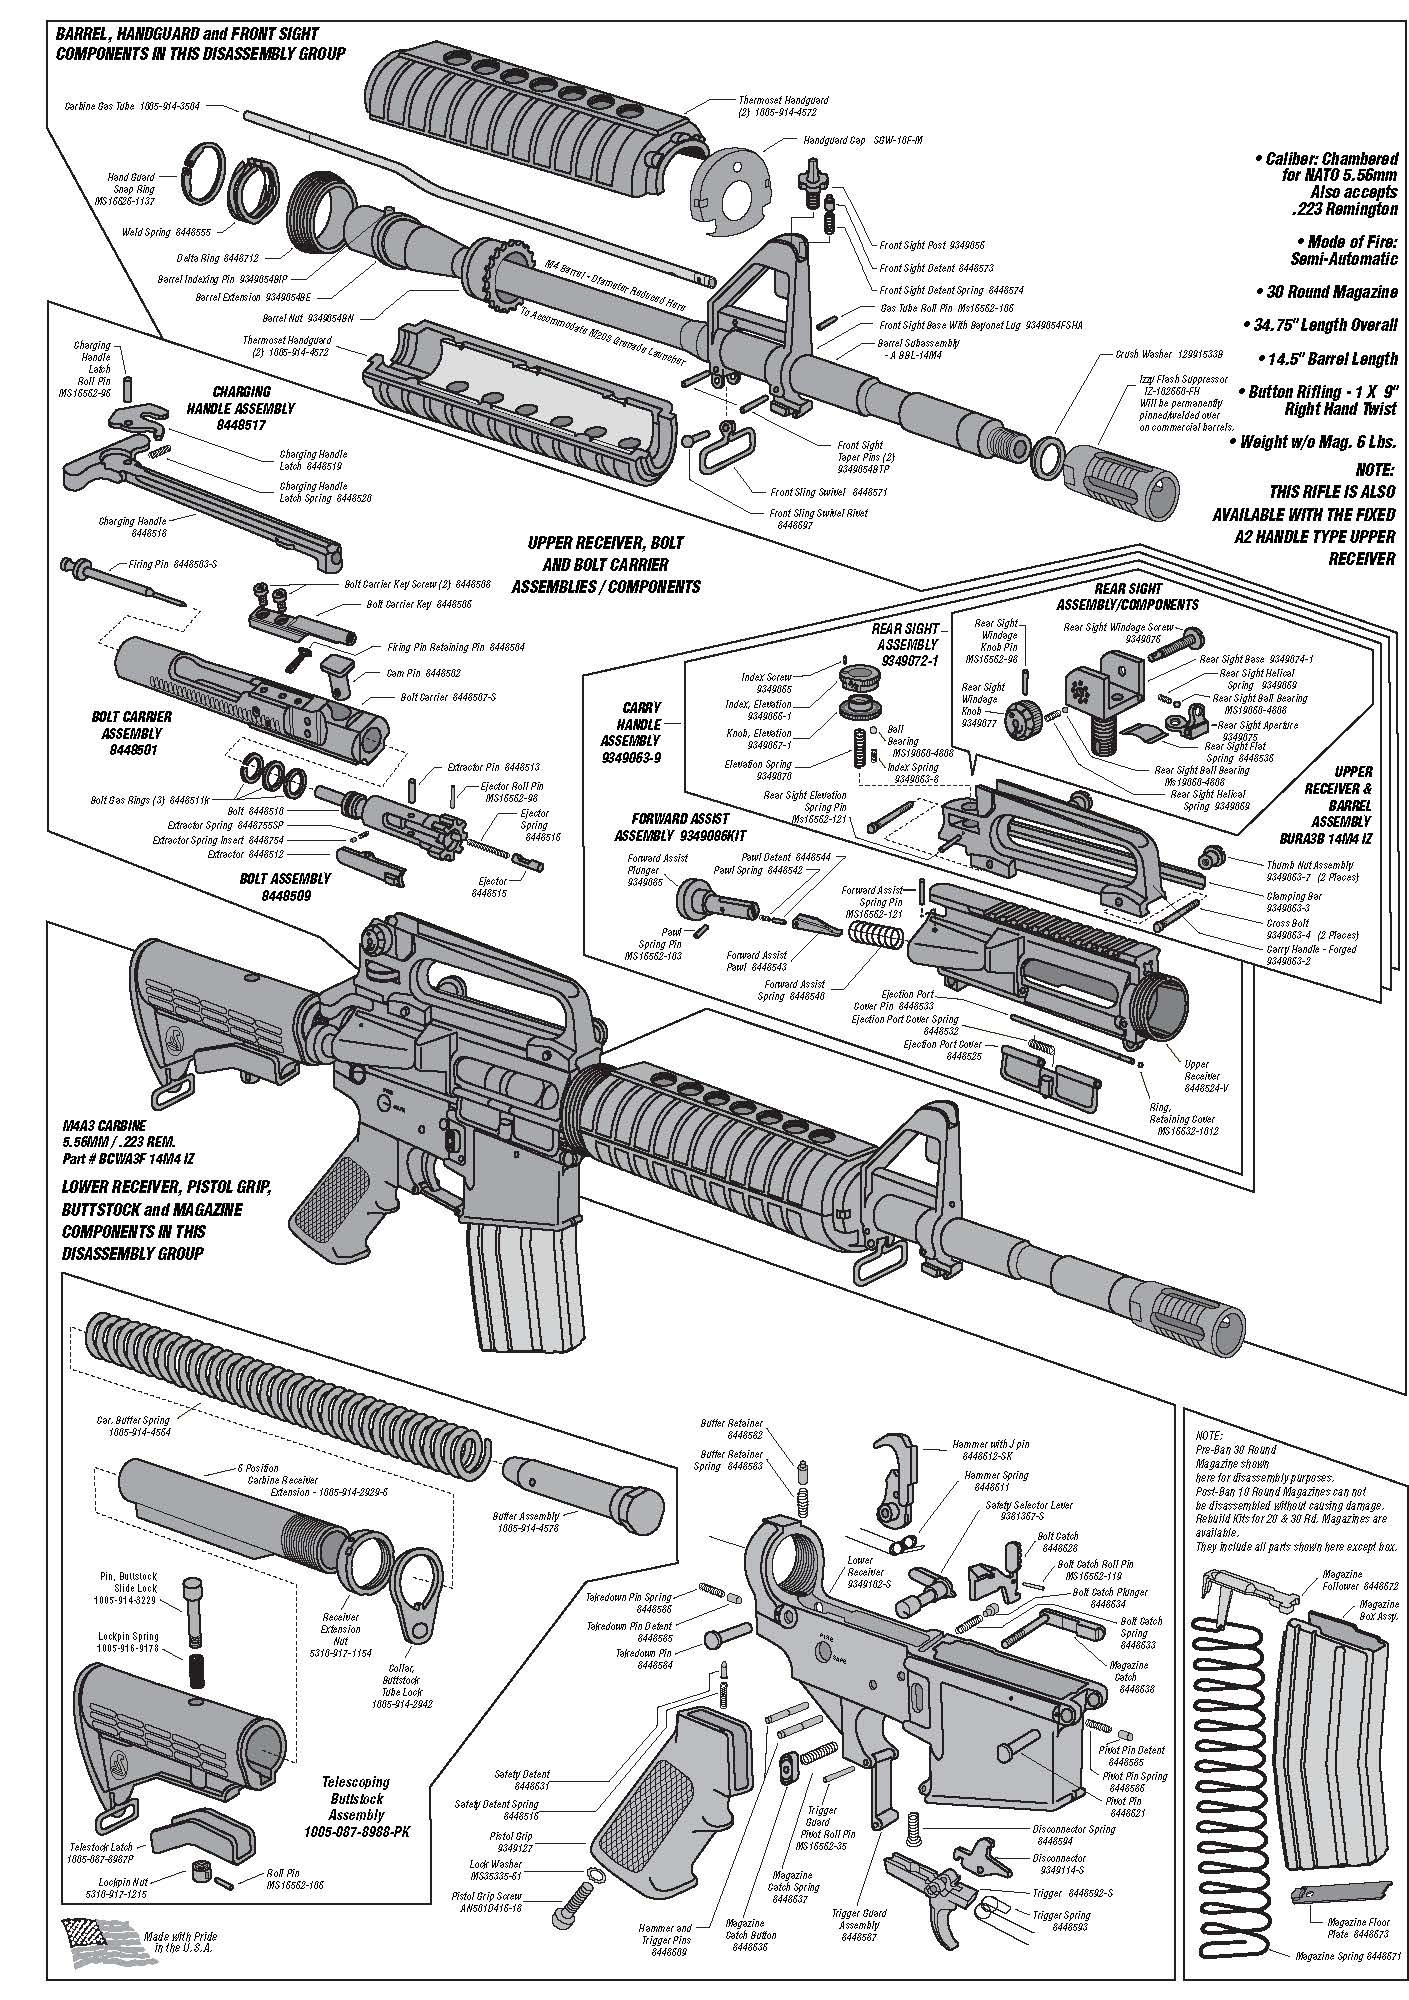 ar 15 stock carbine parts diagram ar schematic | technical drawings & cutaways | guns ... ar 15 nomenclature diagram #6